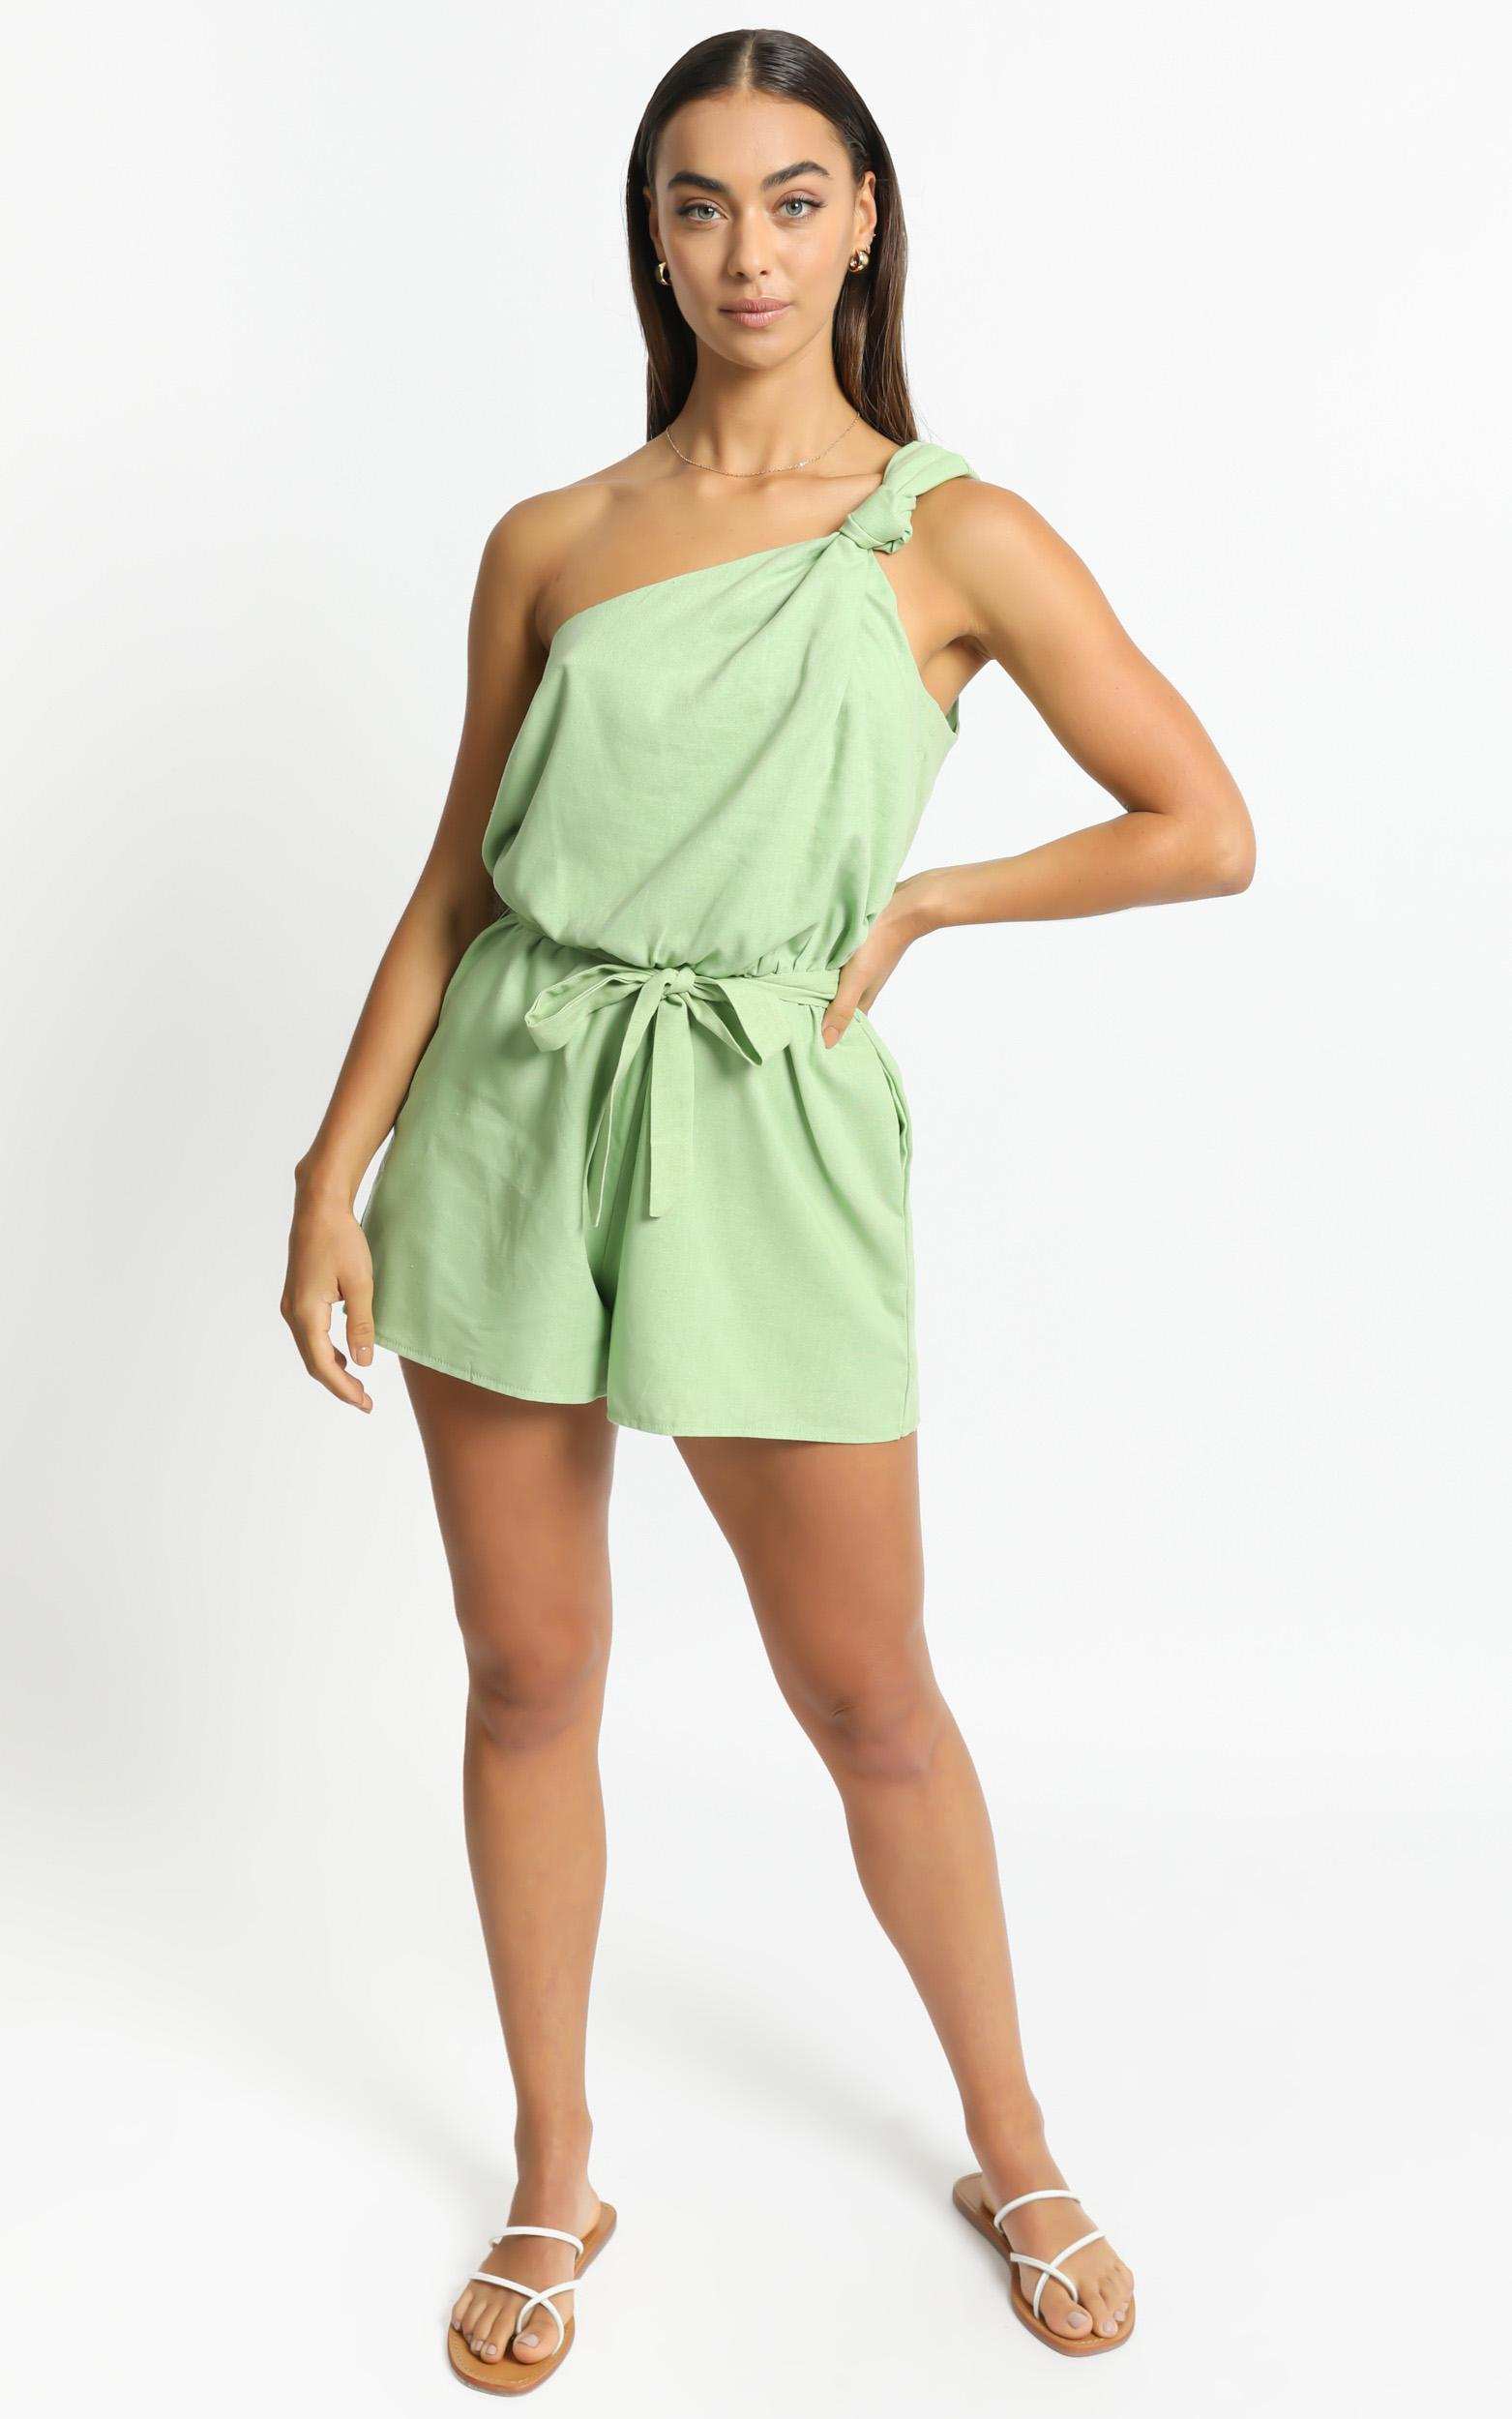 Armelle Playsuit in Green - 06, GRN2, hi-res image number null